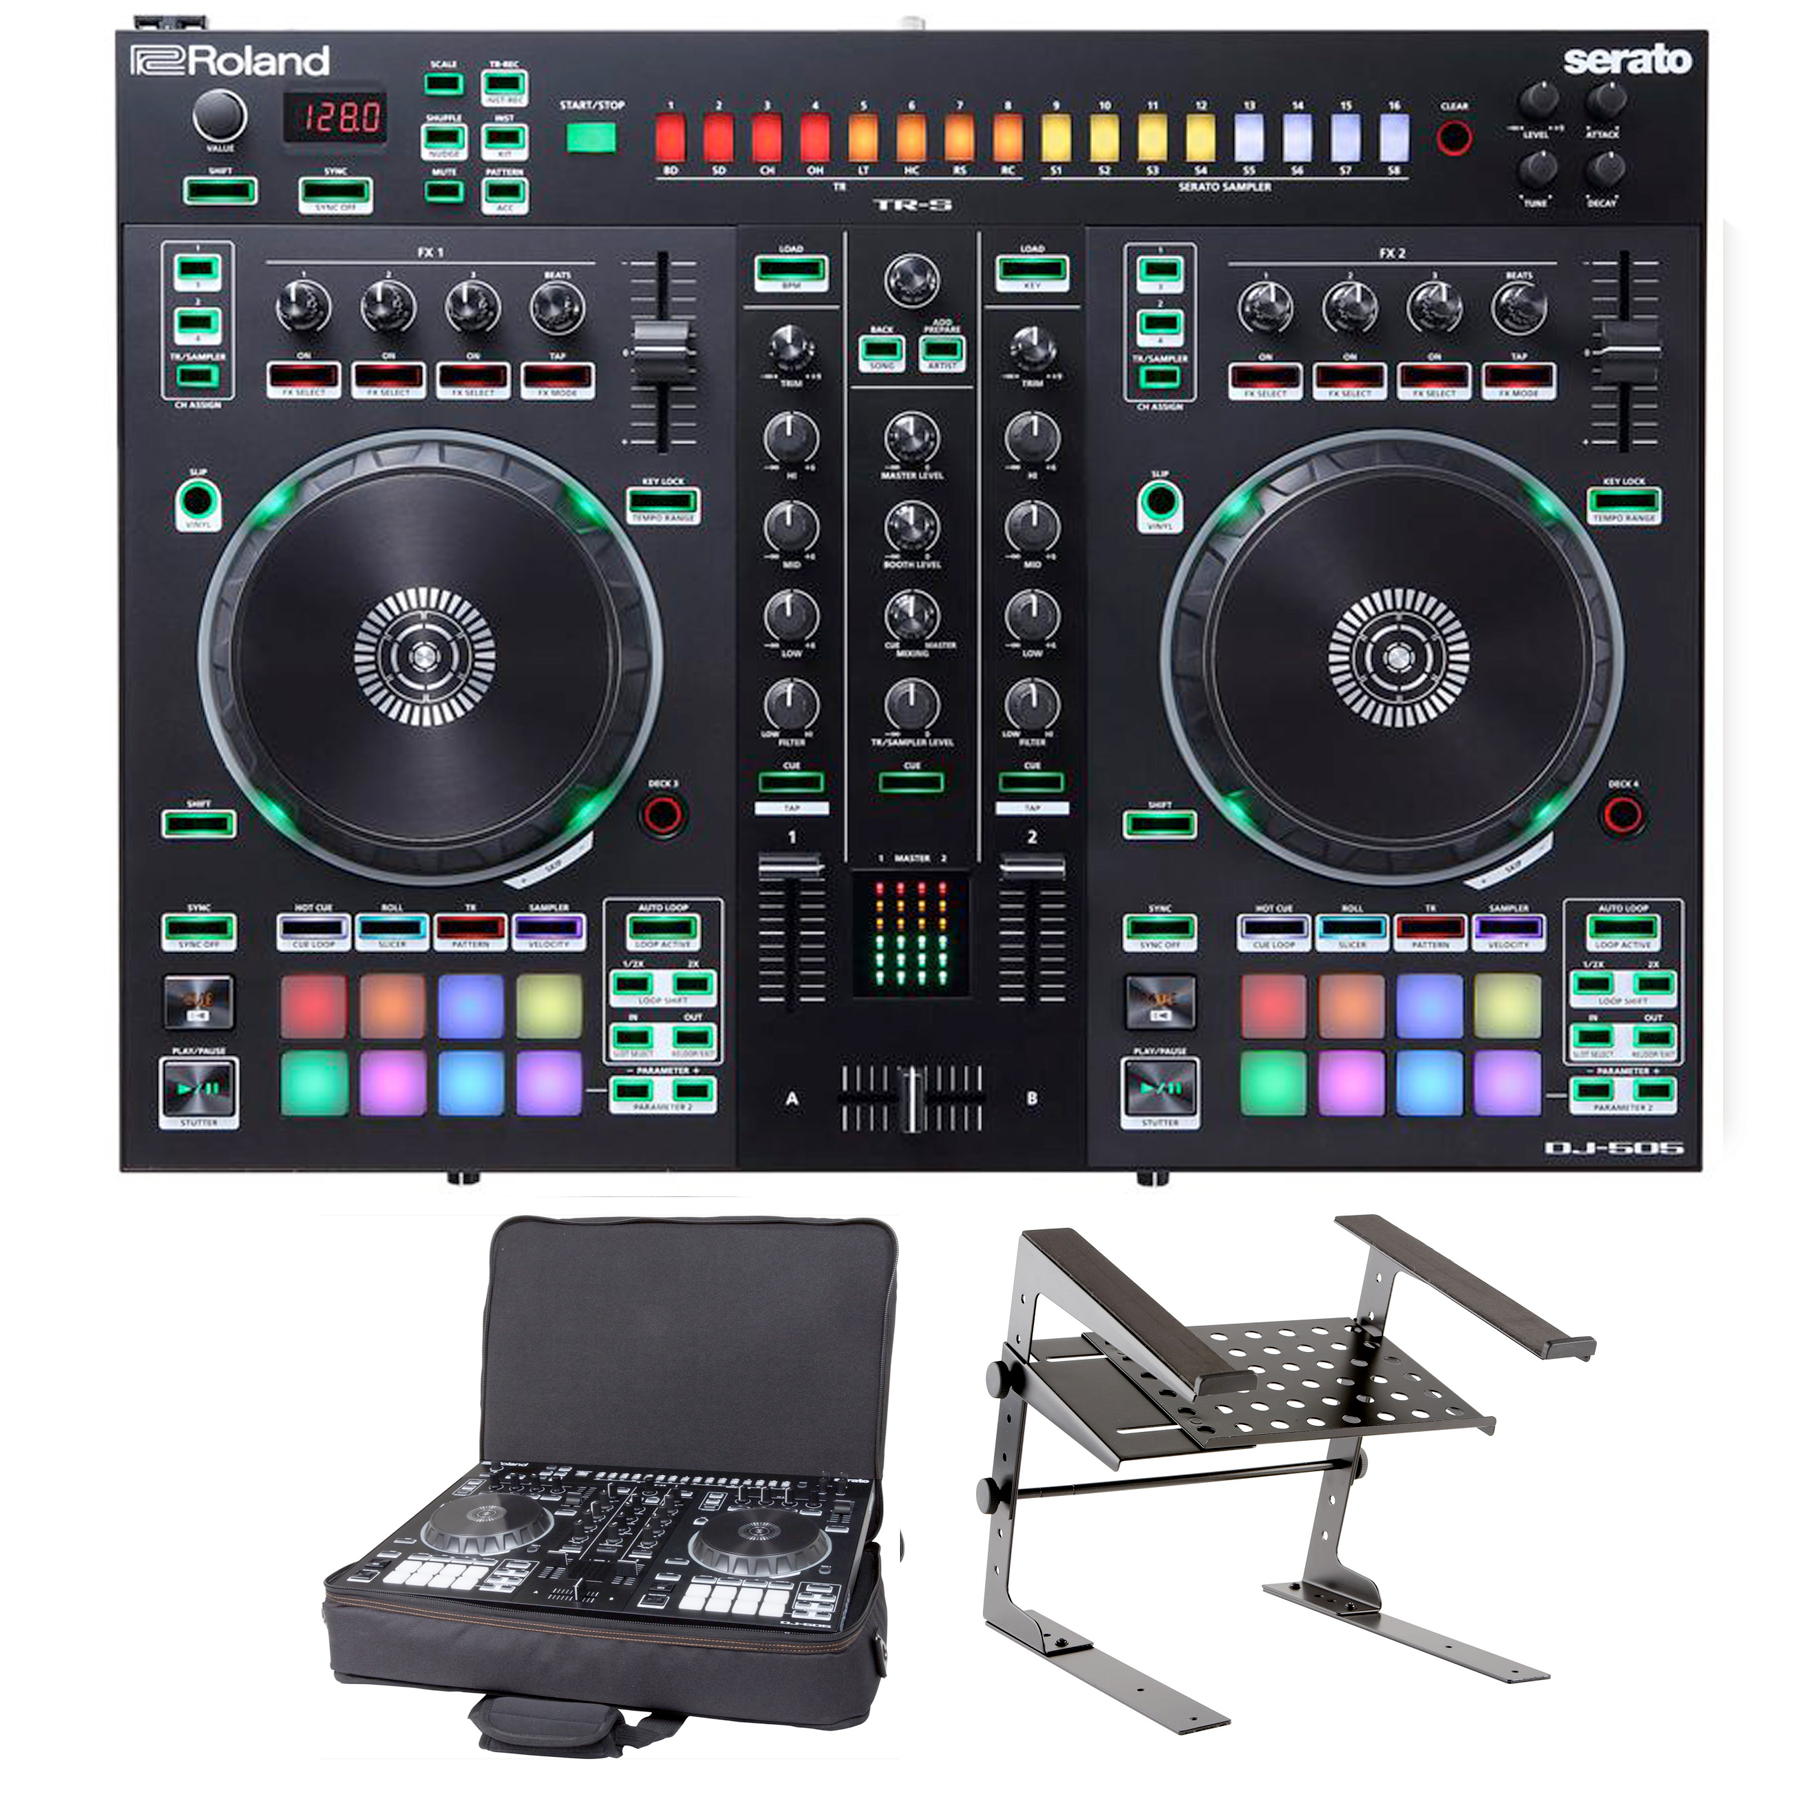 roland dj 505 with laptop stand and bag package deal dj equipment chicago lowest price. Black Bedroom Furniture Sets. Home Design Ideas